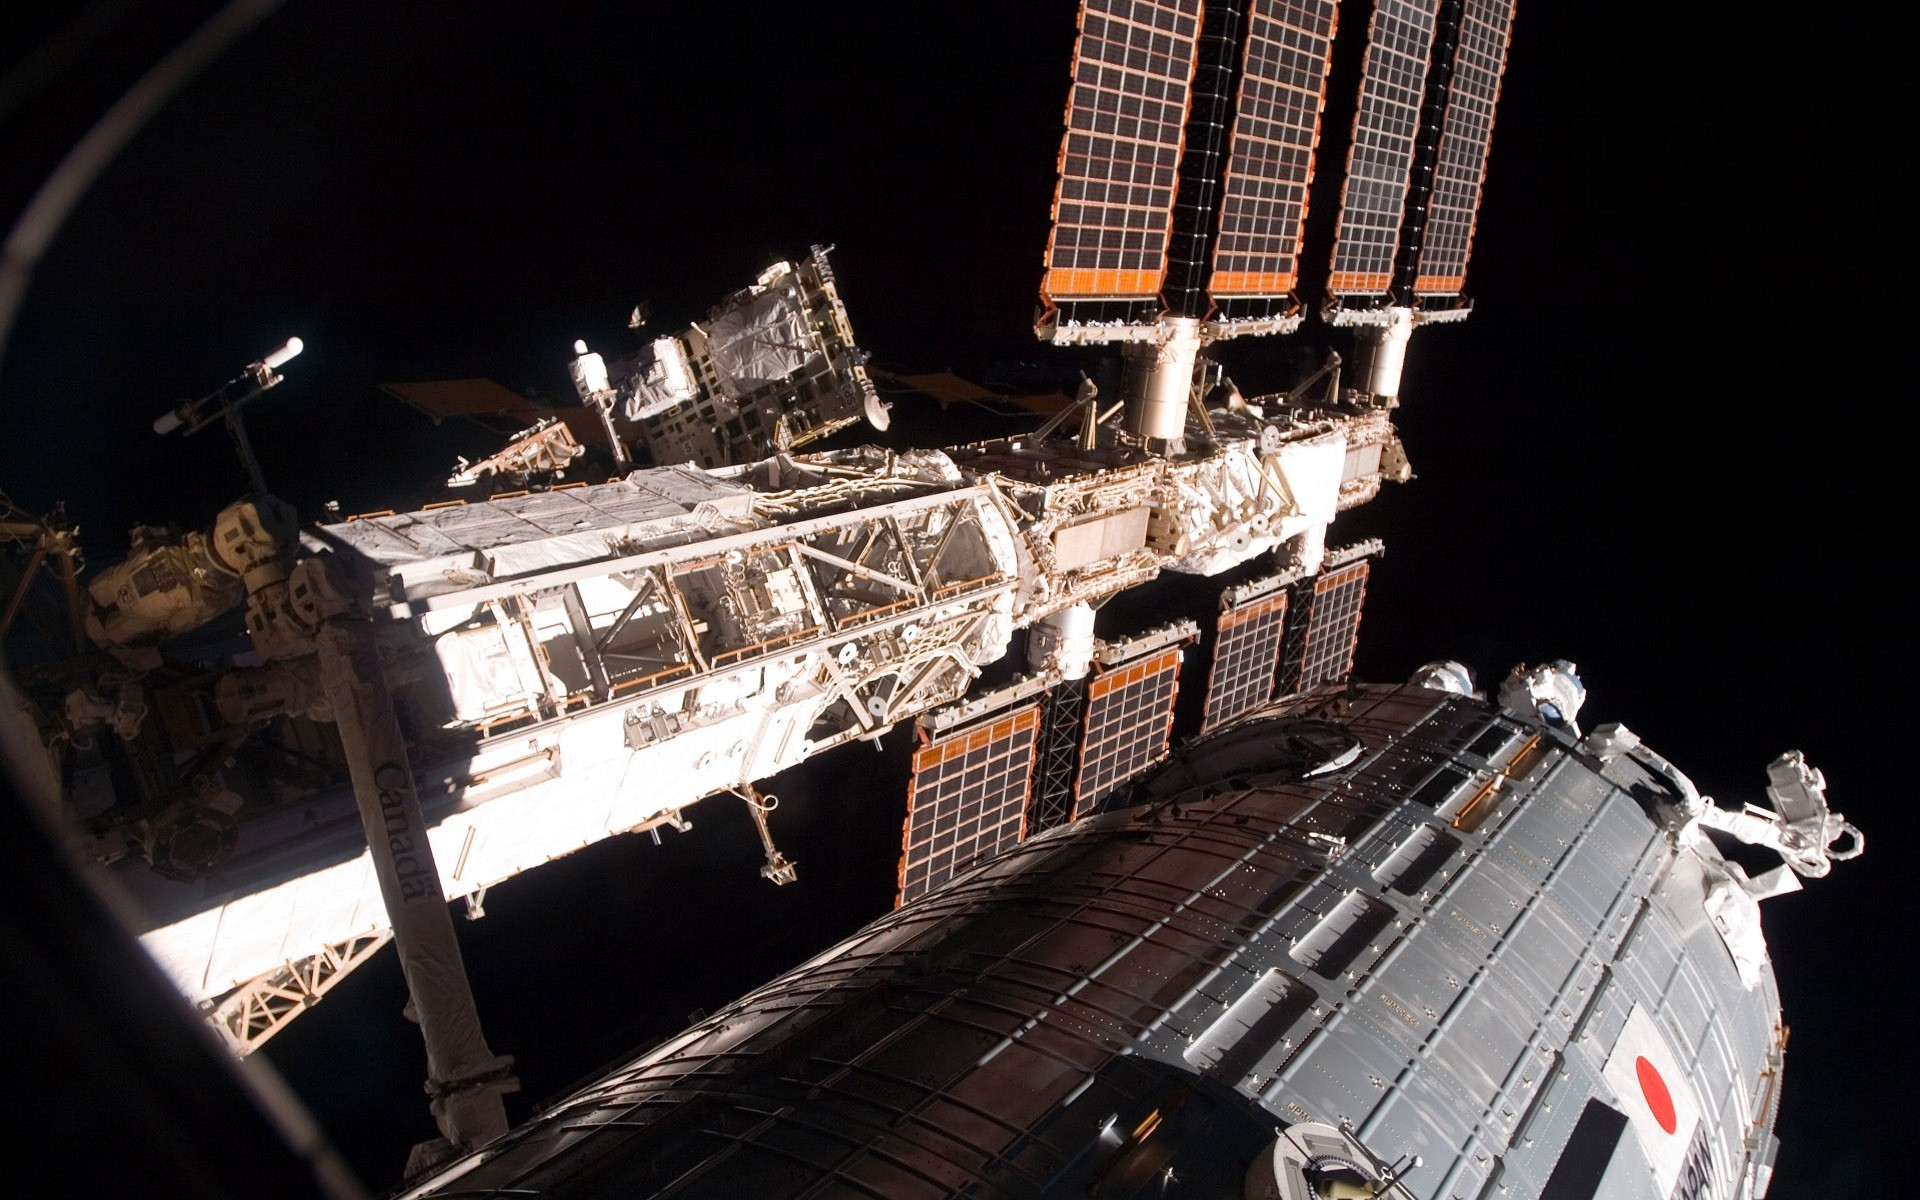 1920x1200 Preview wallpaper solar panels of The international space station